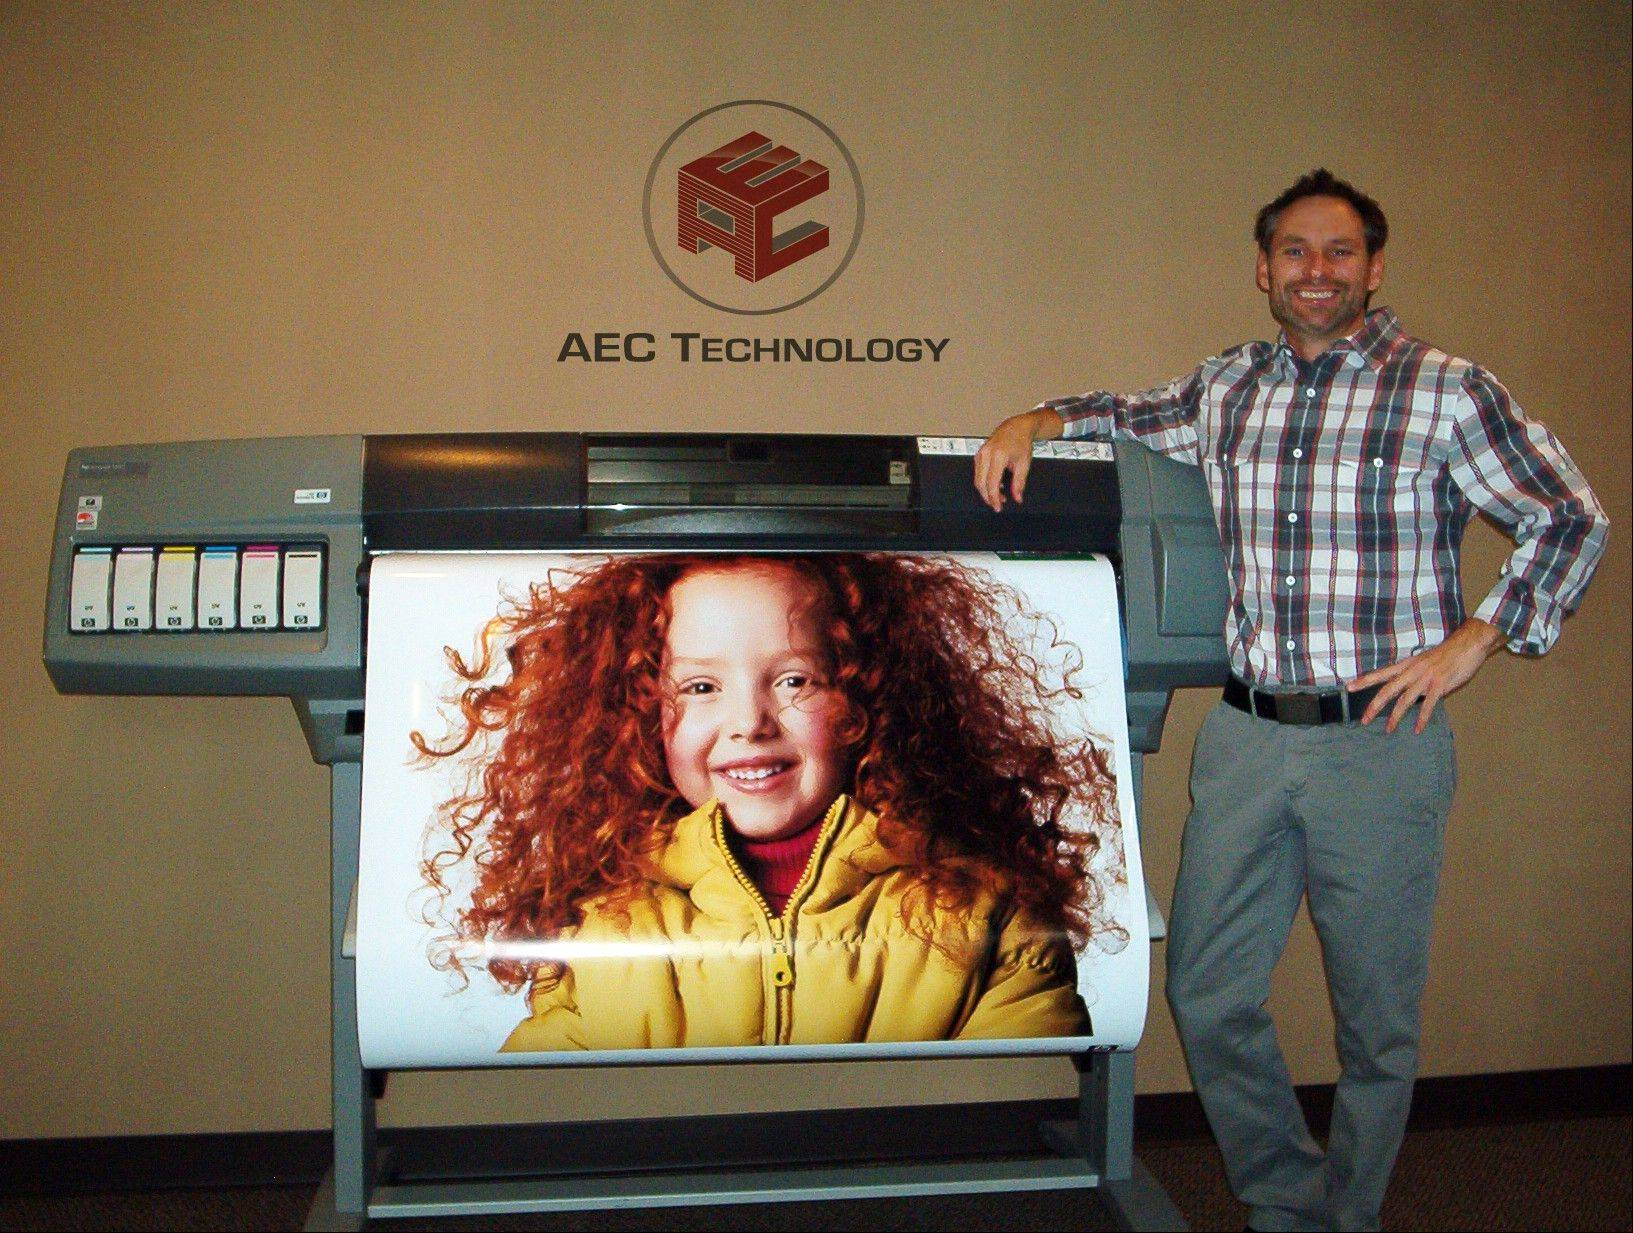 Jerry Rushing, owner of AEC Technology, supports local architects, engineers and contractors by providing cost effective large format document solutions.